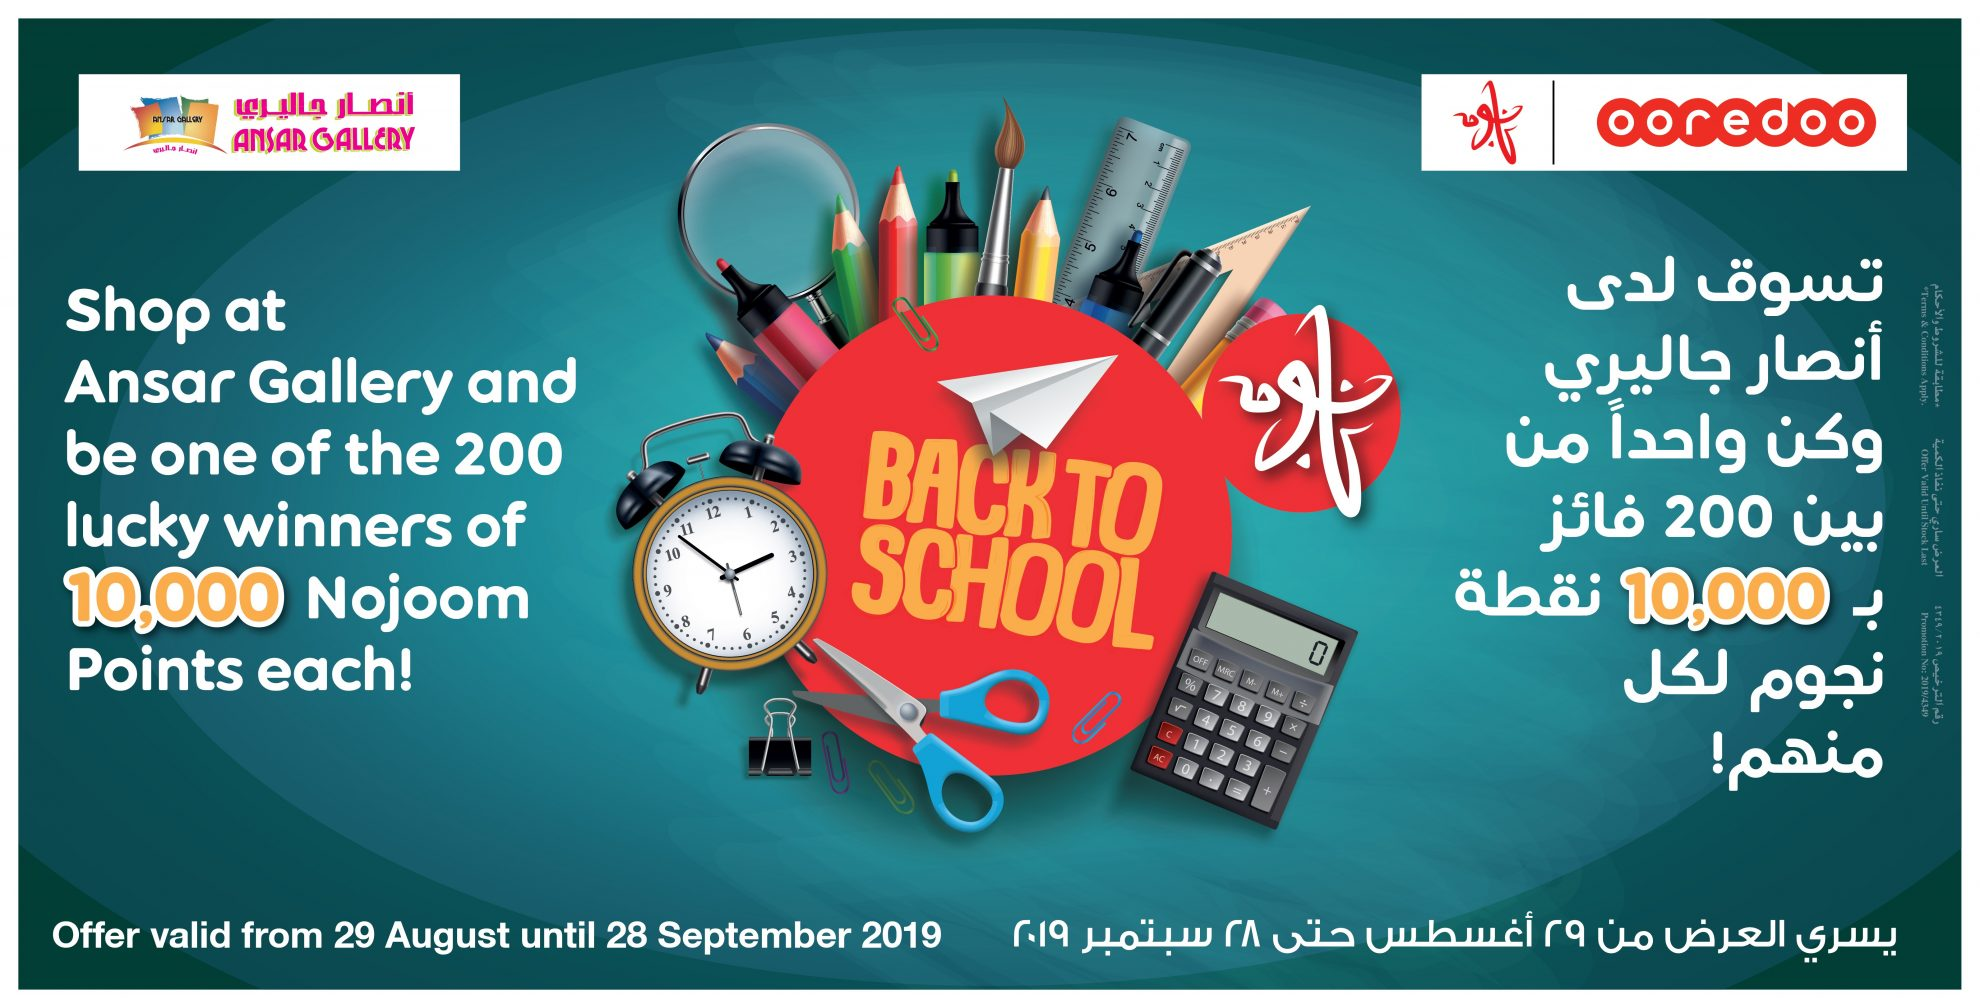 Back To School with Ansar Gallery and Nojoom